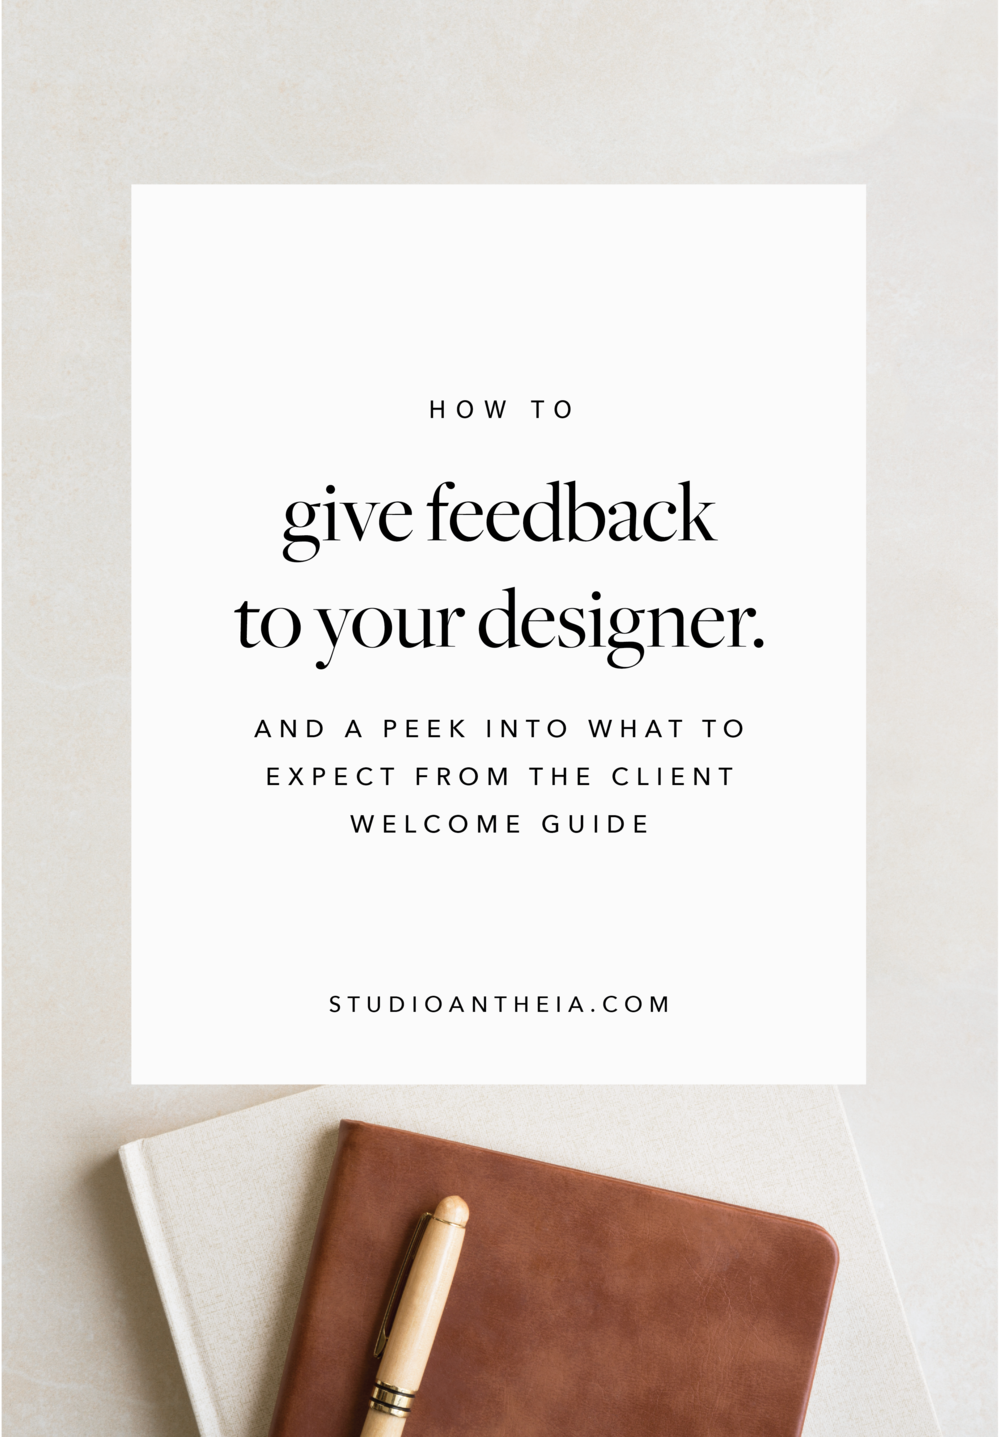 How-To-Give-Feedback-to-your-designer-studioa-antheia-02.png